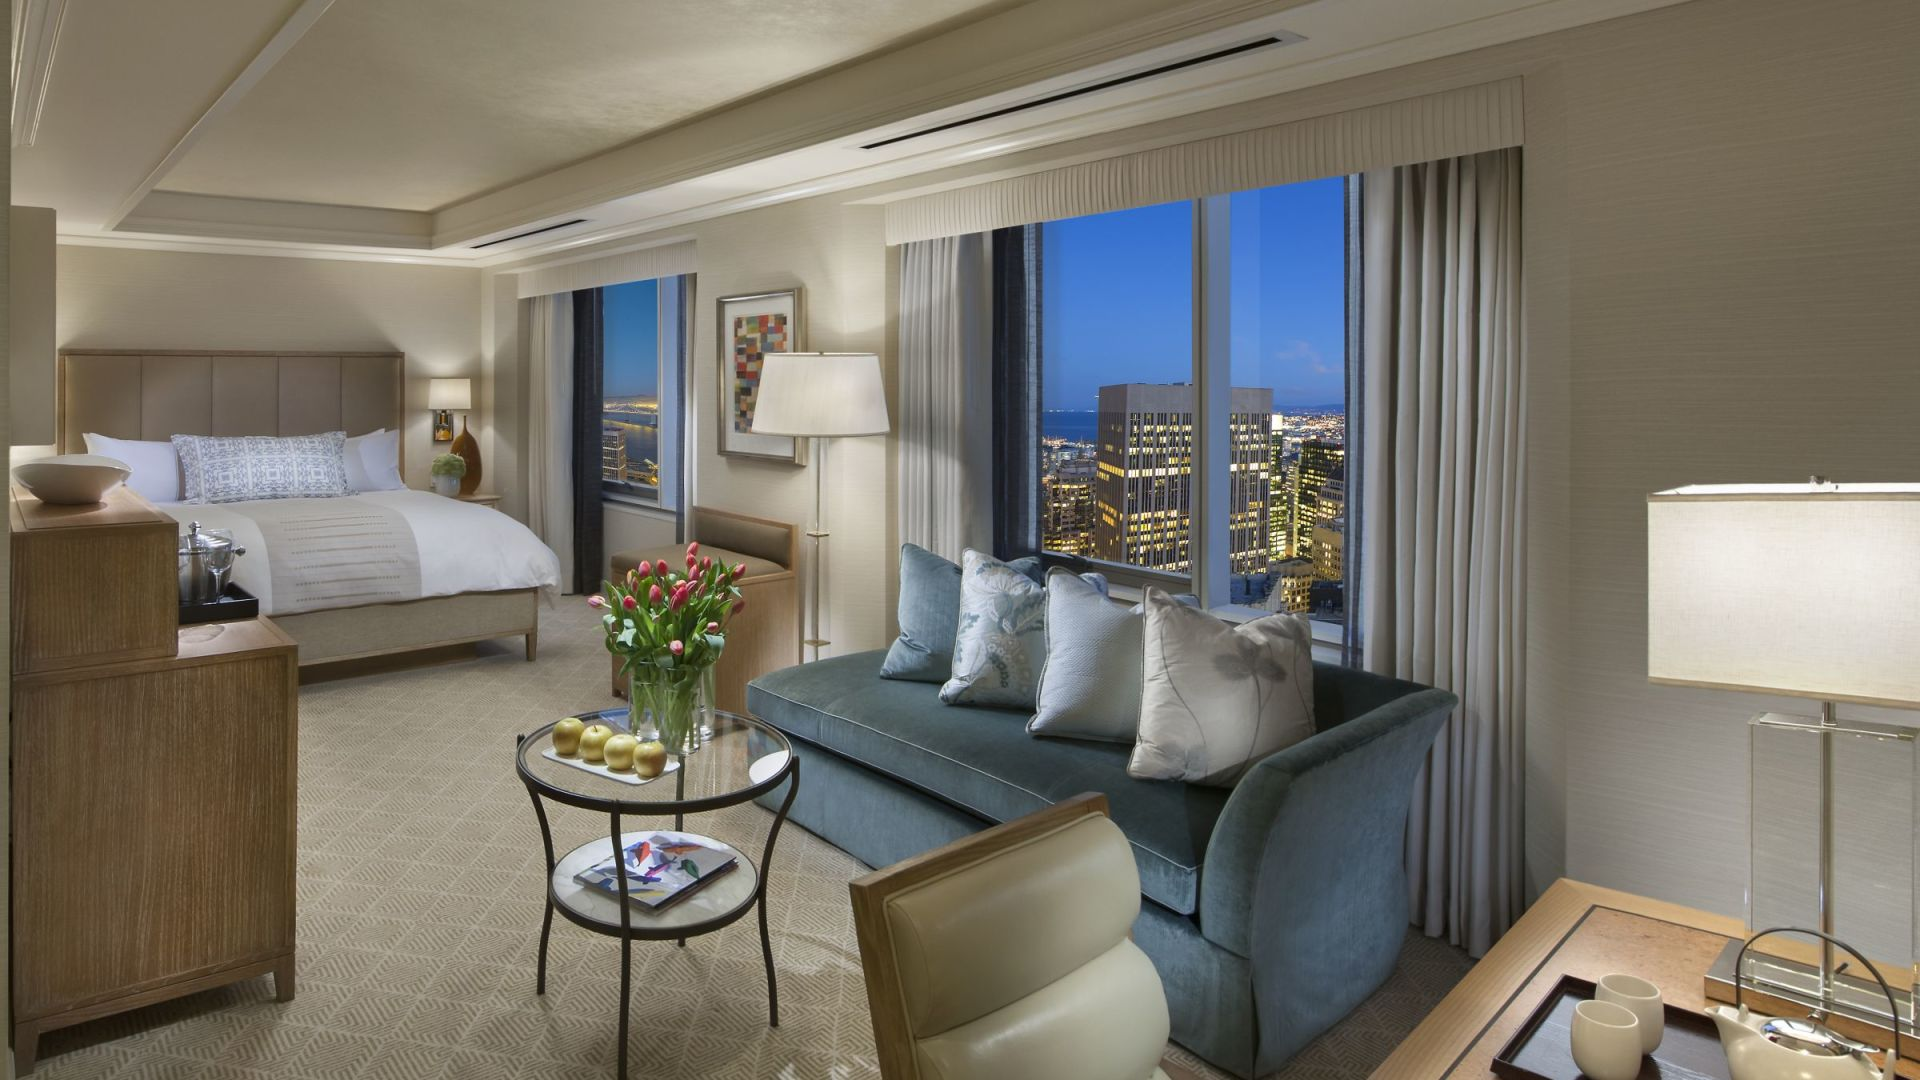 Deluxe City View King Room | Loews Regency San Francisco